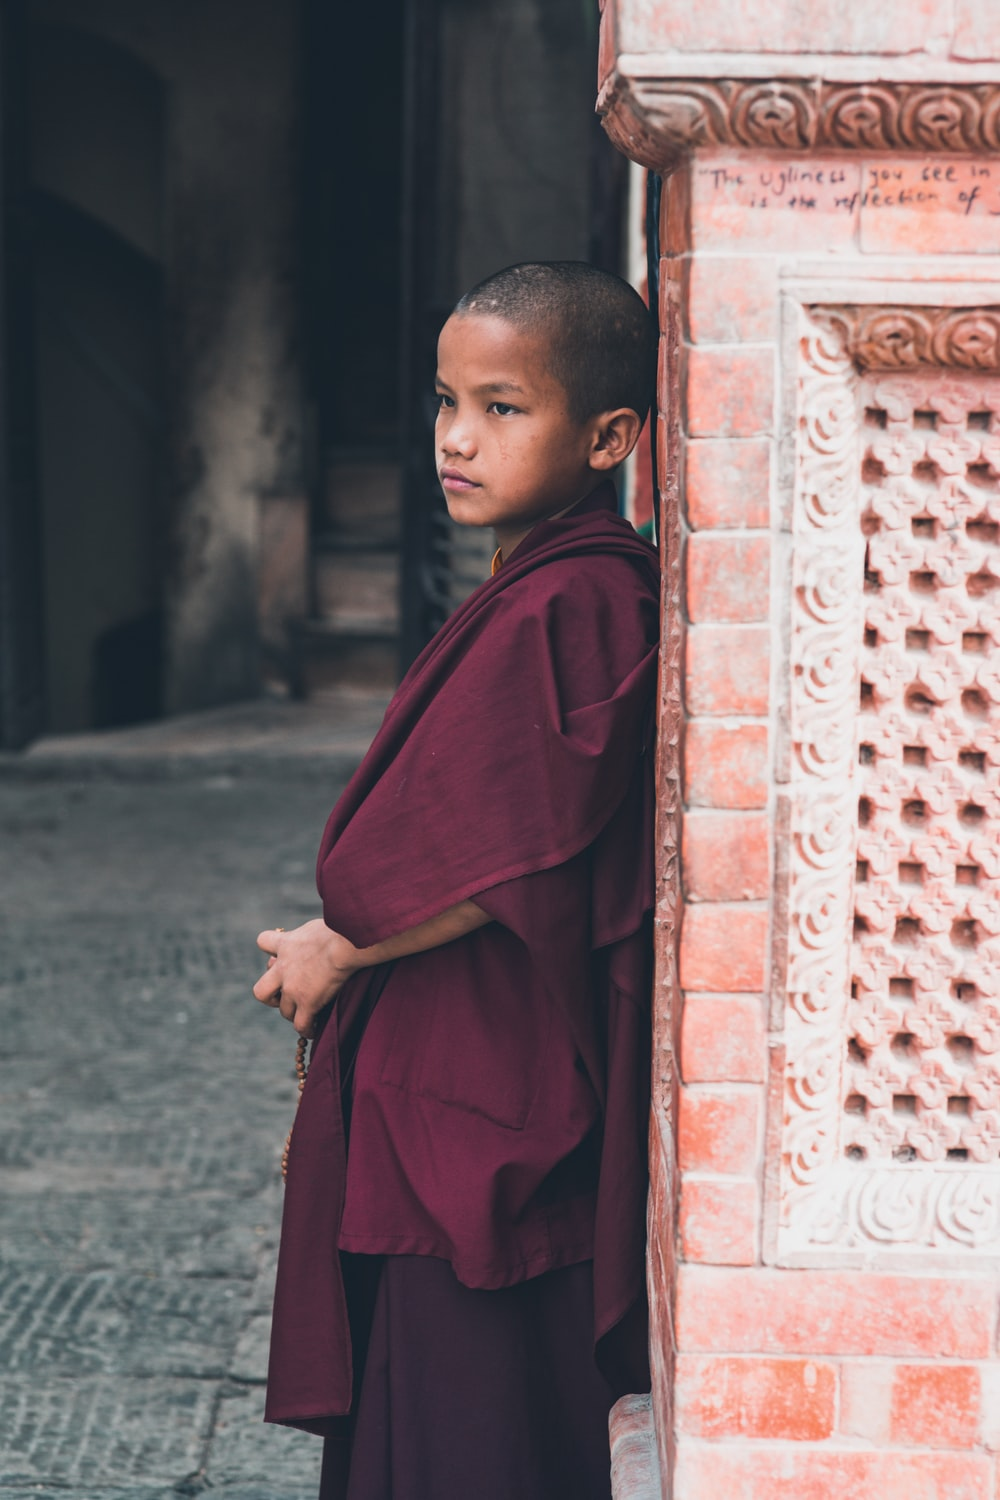 boy in red robe standing near brown brick wall during daytime